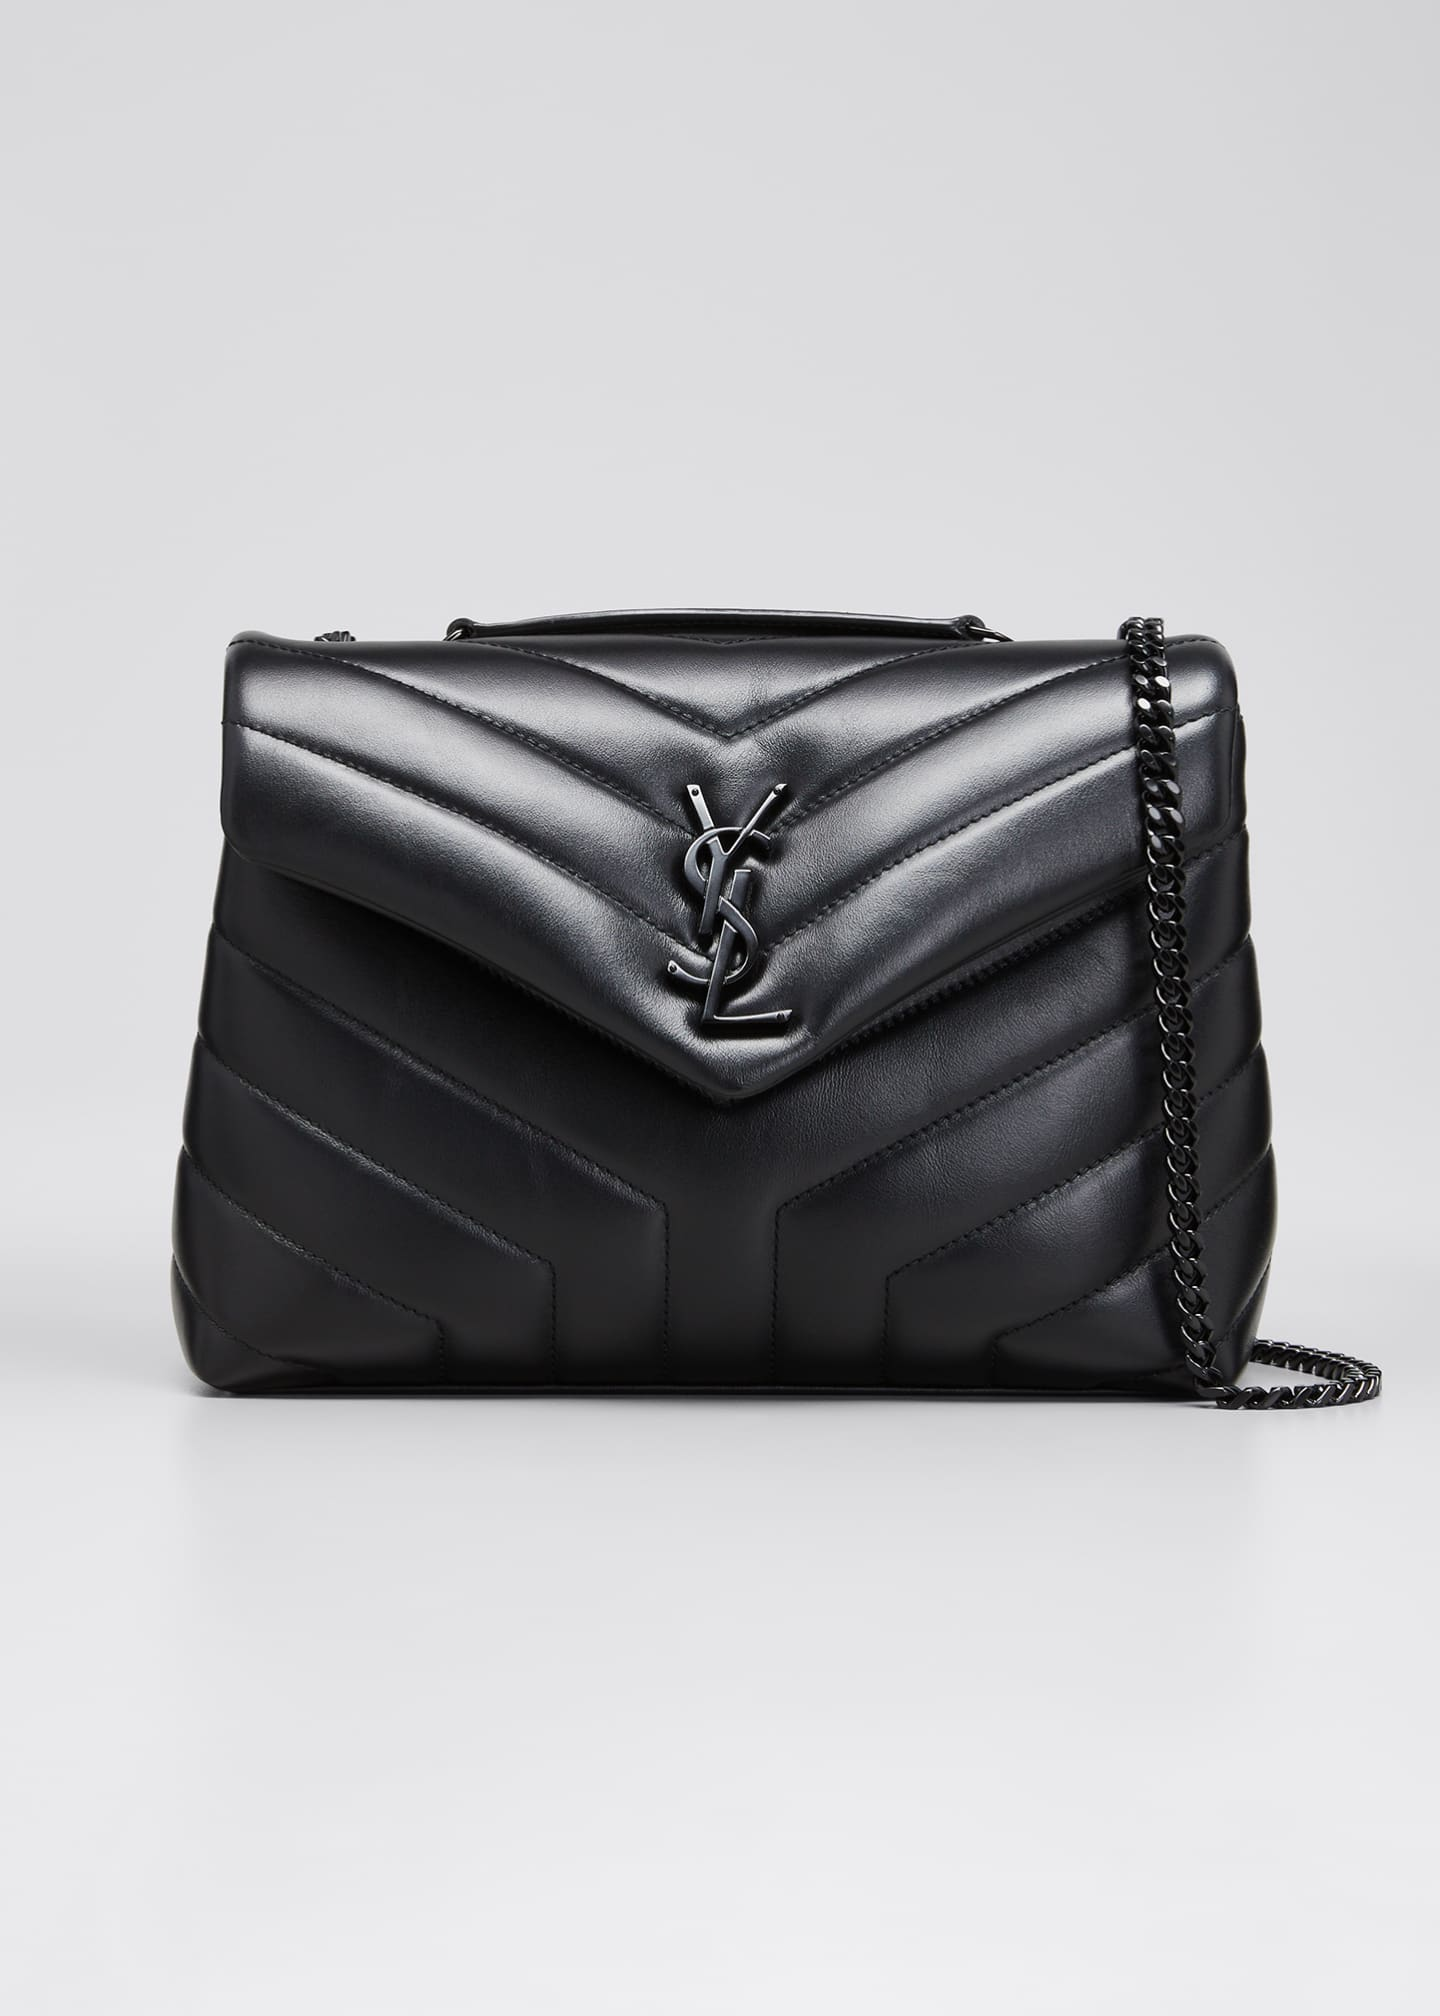 Saint Laurent Loulou Small Matelasse Calfskin Flap-Top Shoulder